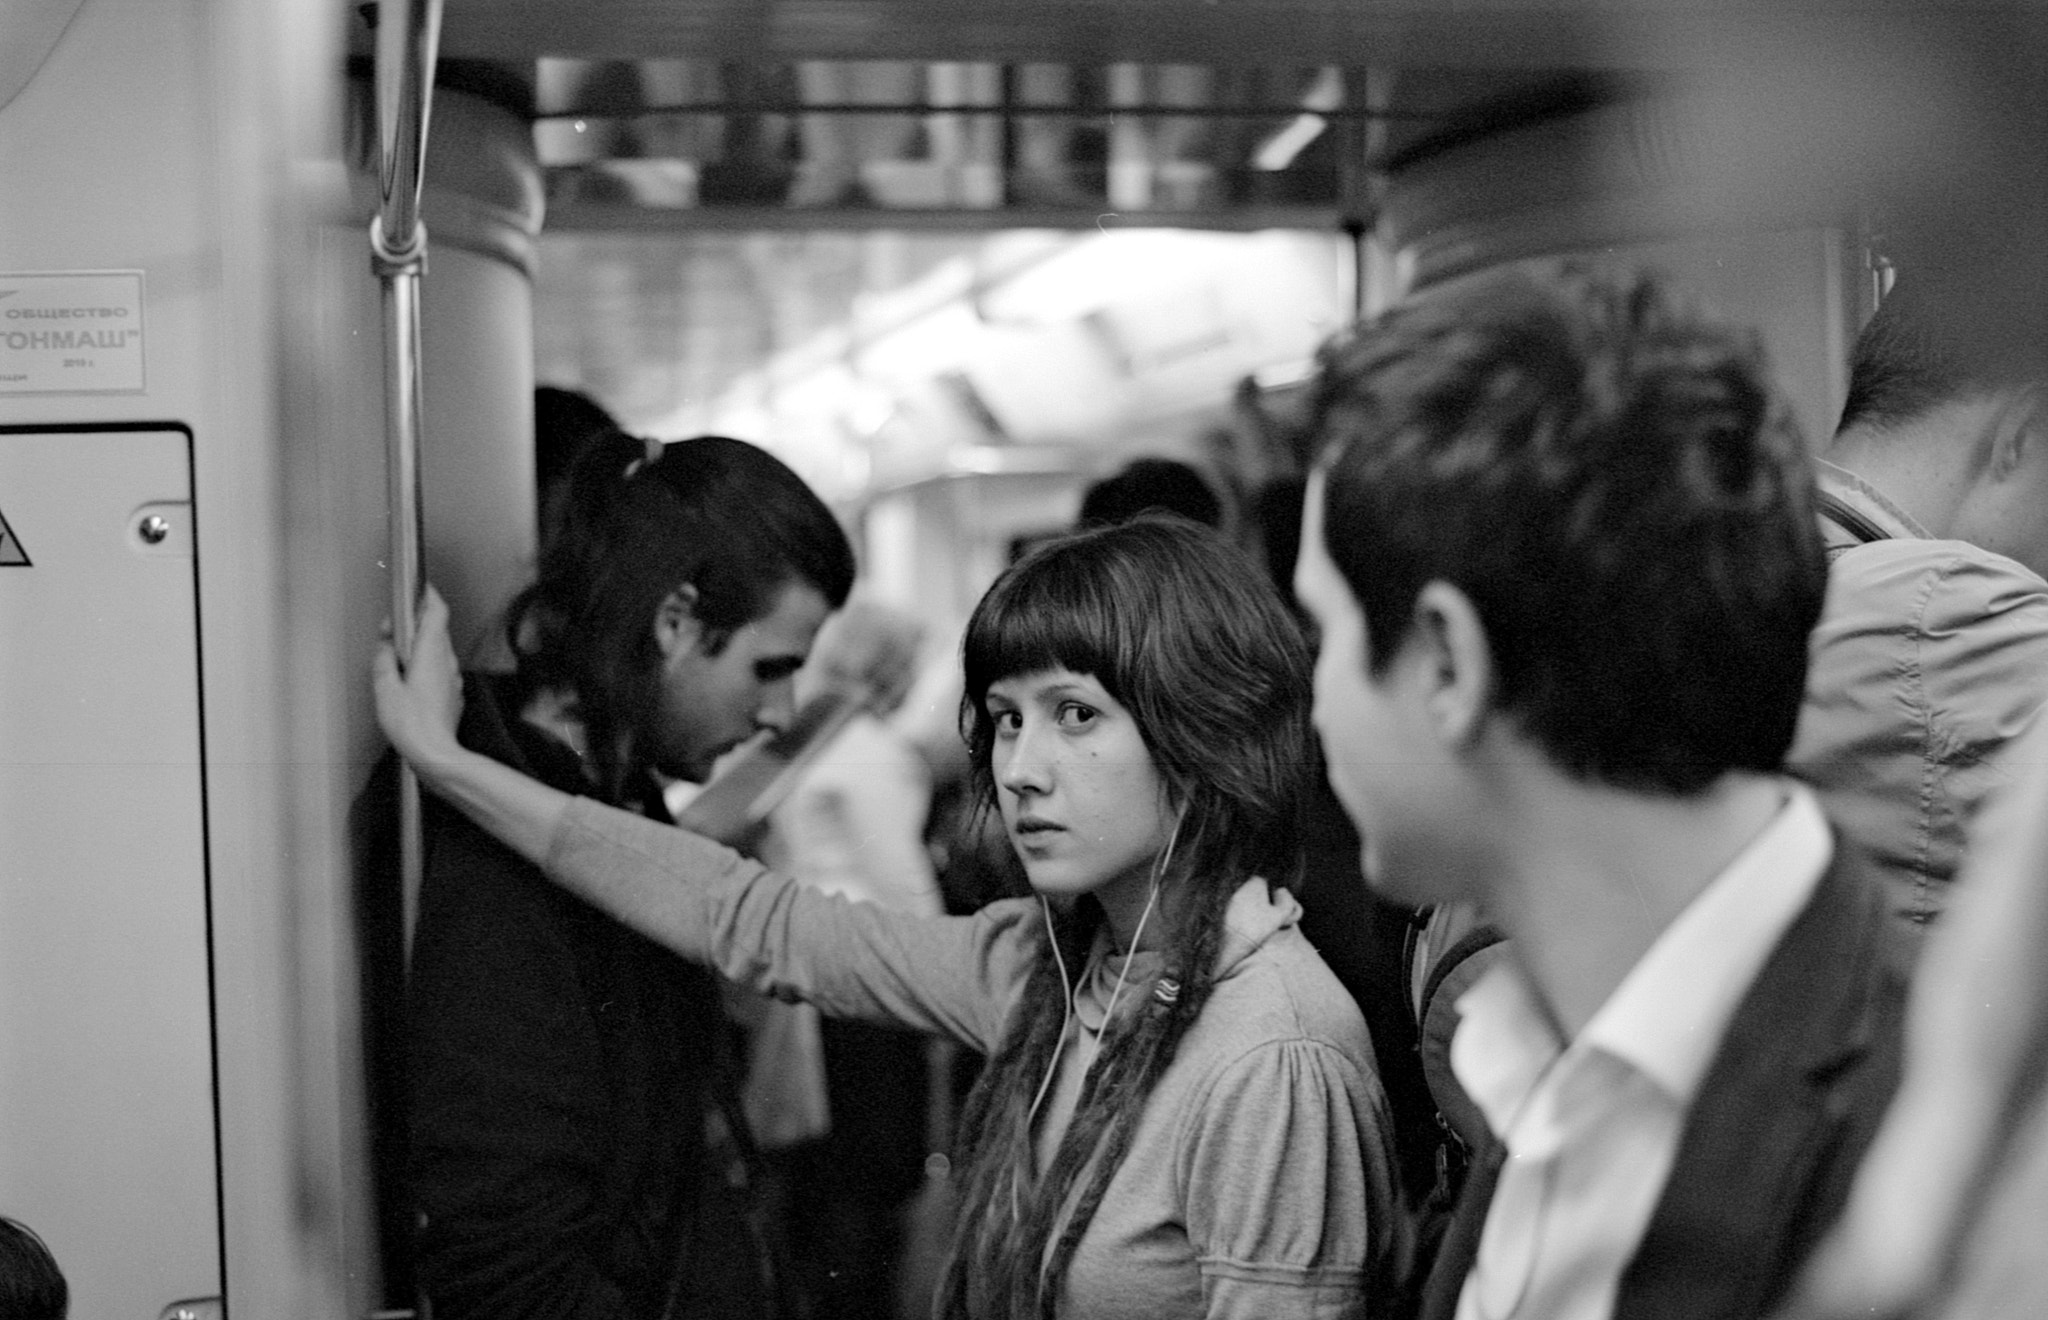 Photograph Subway people by Roman Sotnikov on 500px